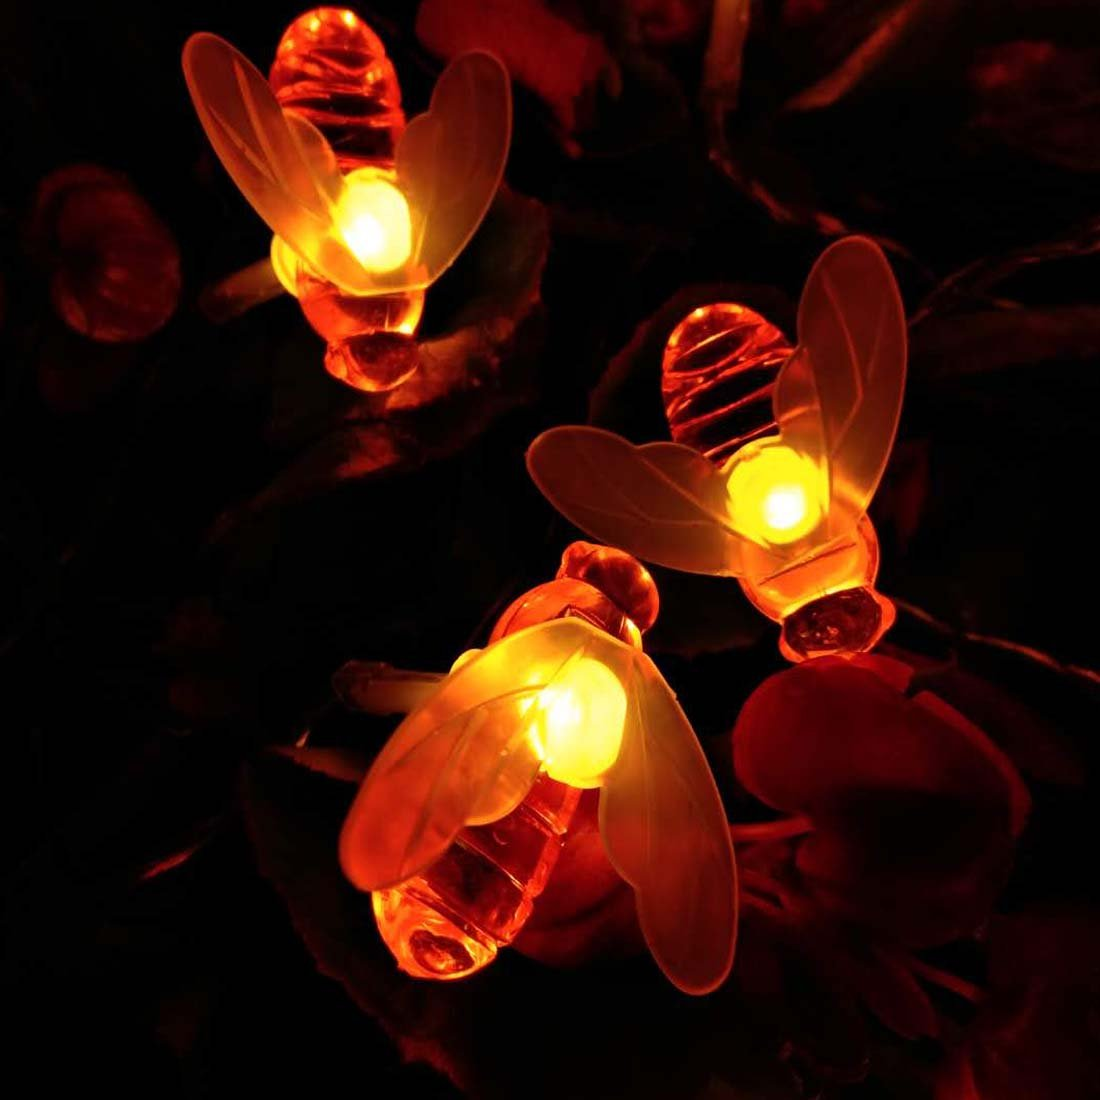 Honeybee Fairy String Lights 20 LED 7.5Ft Honeybee Battery Power Led String Lights for Party,Wedding,Xmas,Decoration,Gardens,Patios